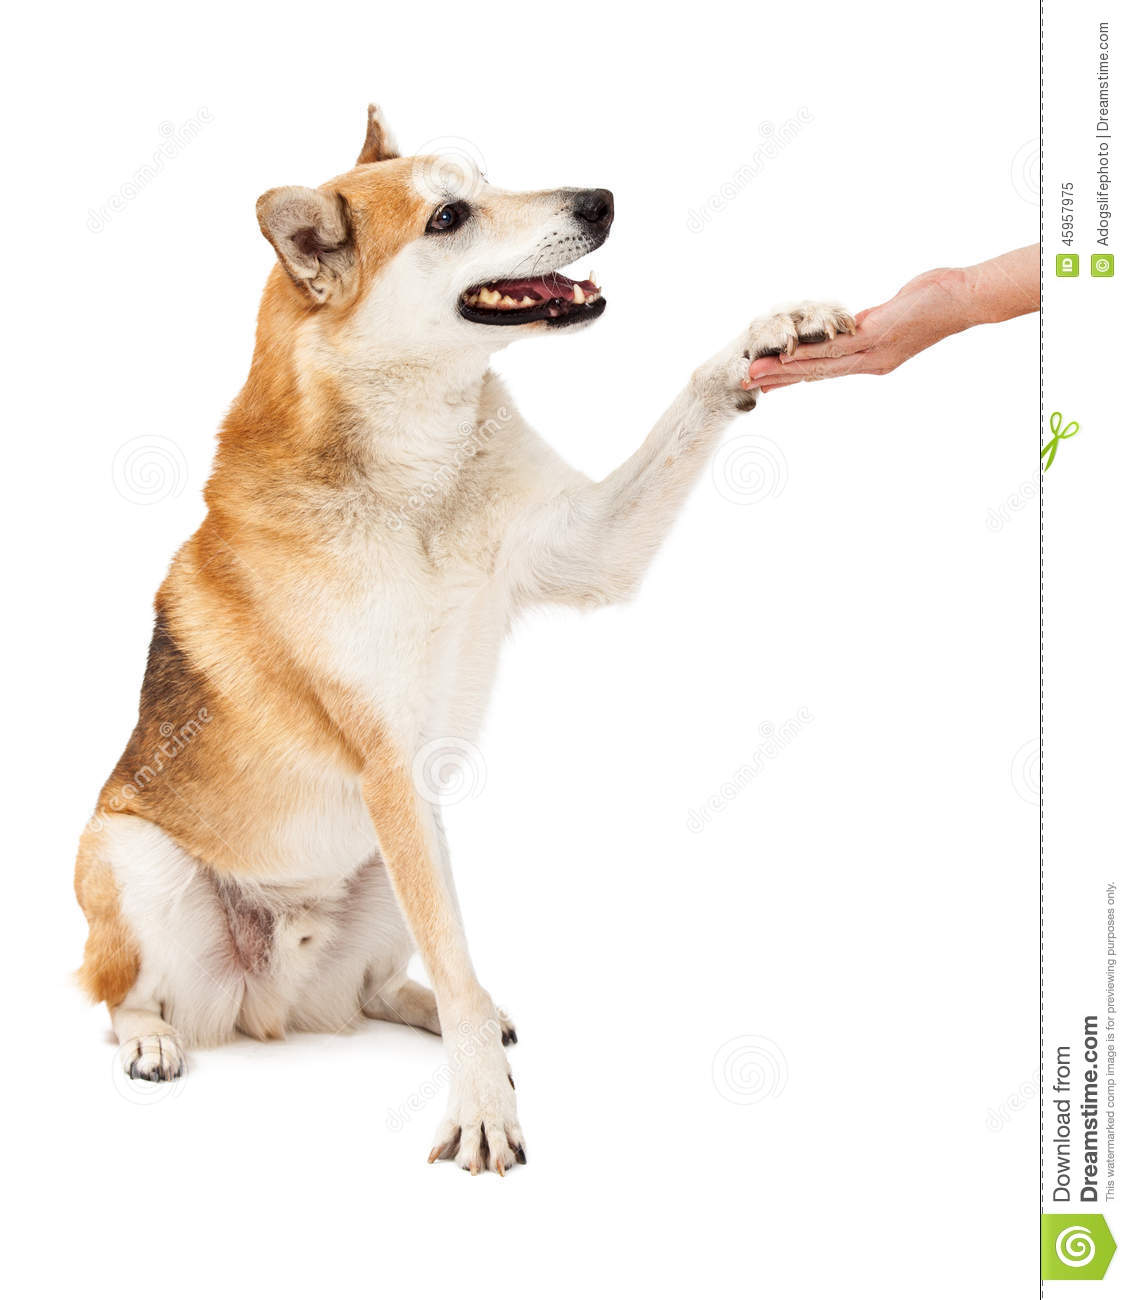 Dog And Human Mix A friendly shiba inu mix dog